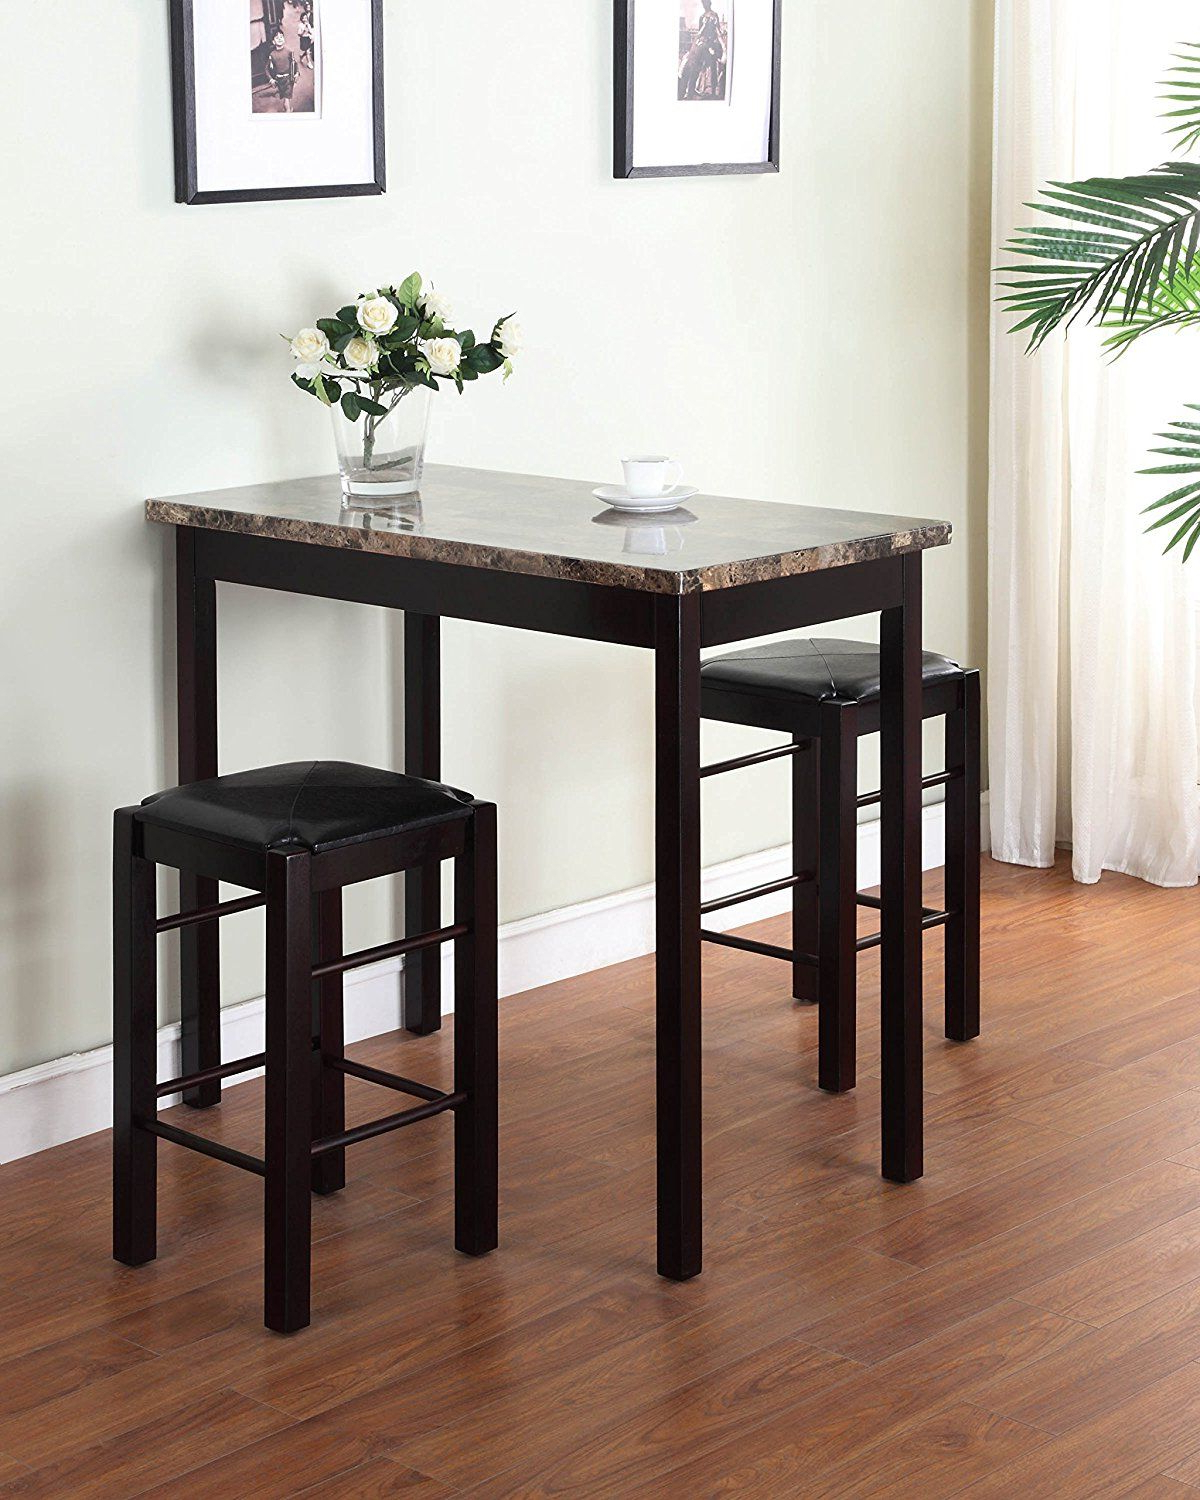 Hood Canal 3 Piece Dining Sets pertaining to Well-liked Attractive 3-Piece Table Set With Padded Stool Seats With Black